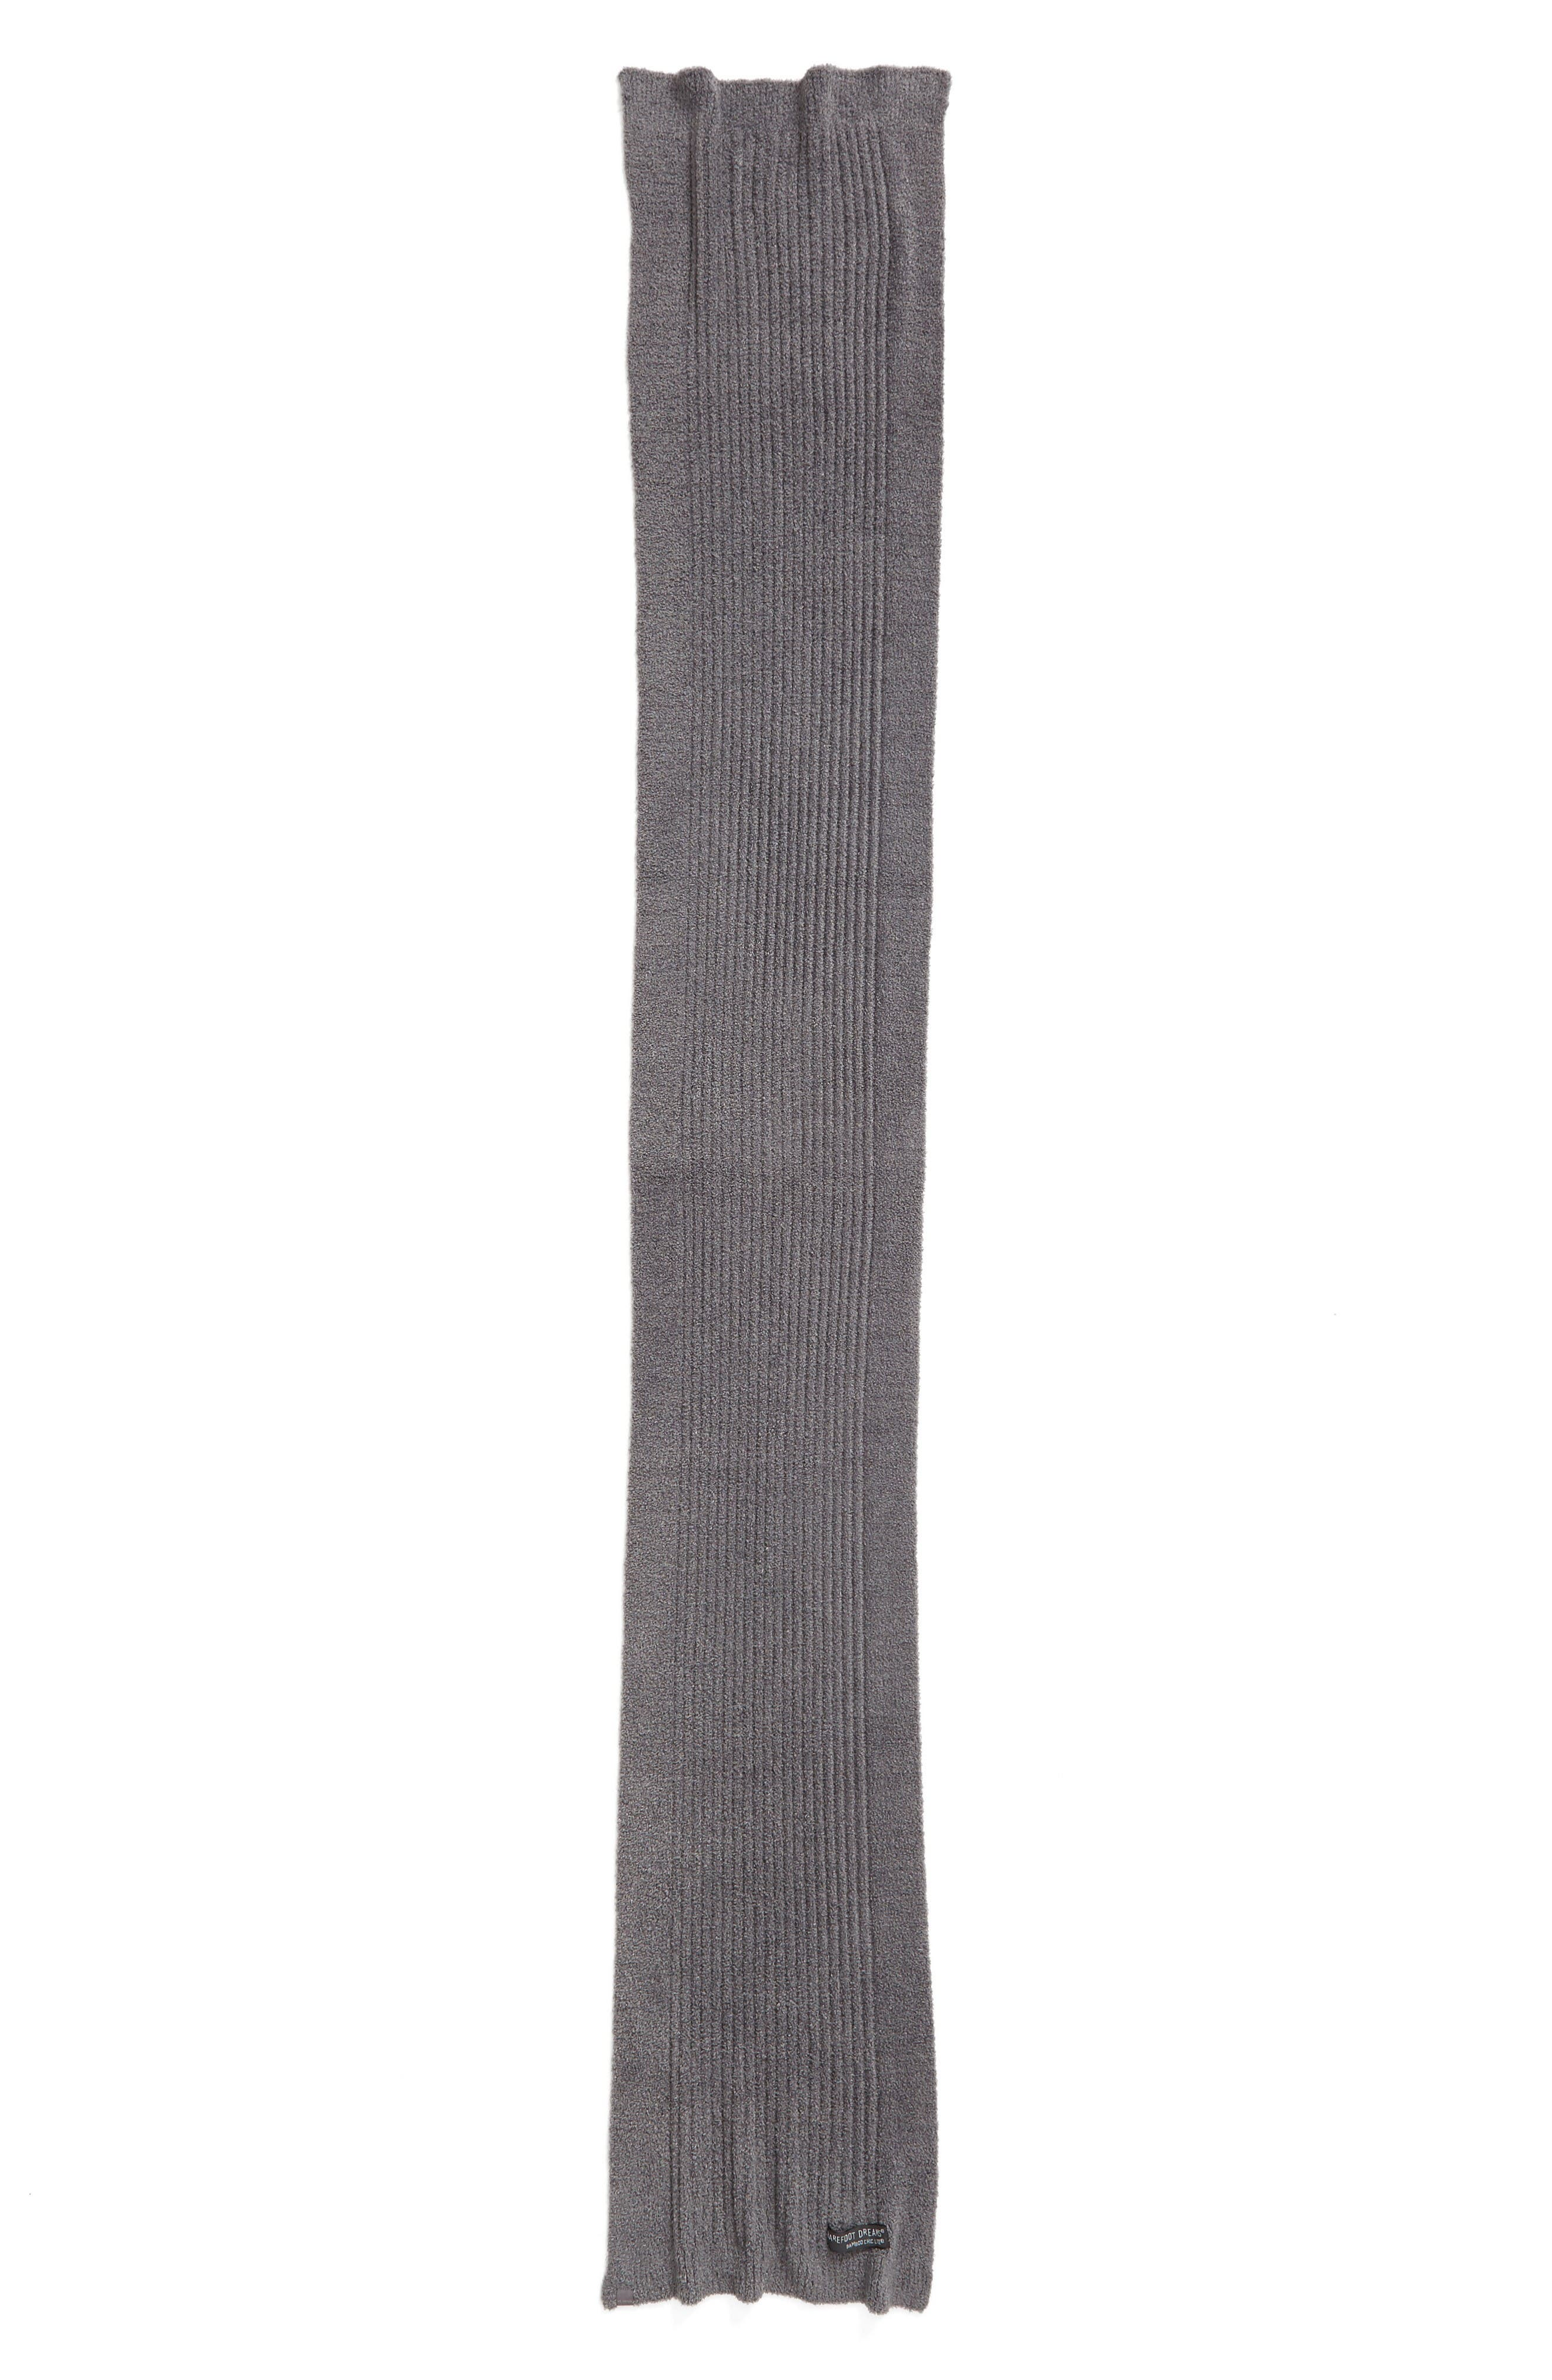 CozyChic Lite<sup>®</sup> Ribbed Scarf,                             Alternate thumbnail 2, color,                             Graphite